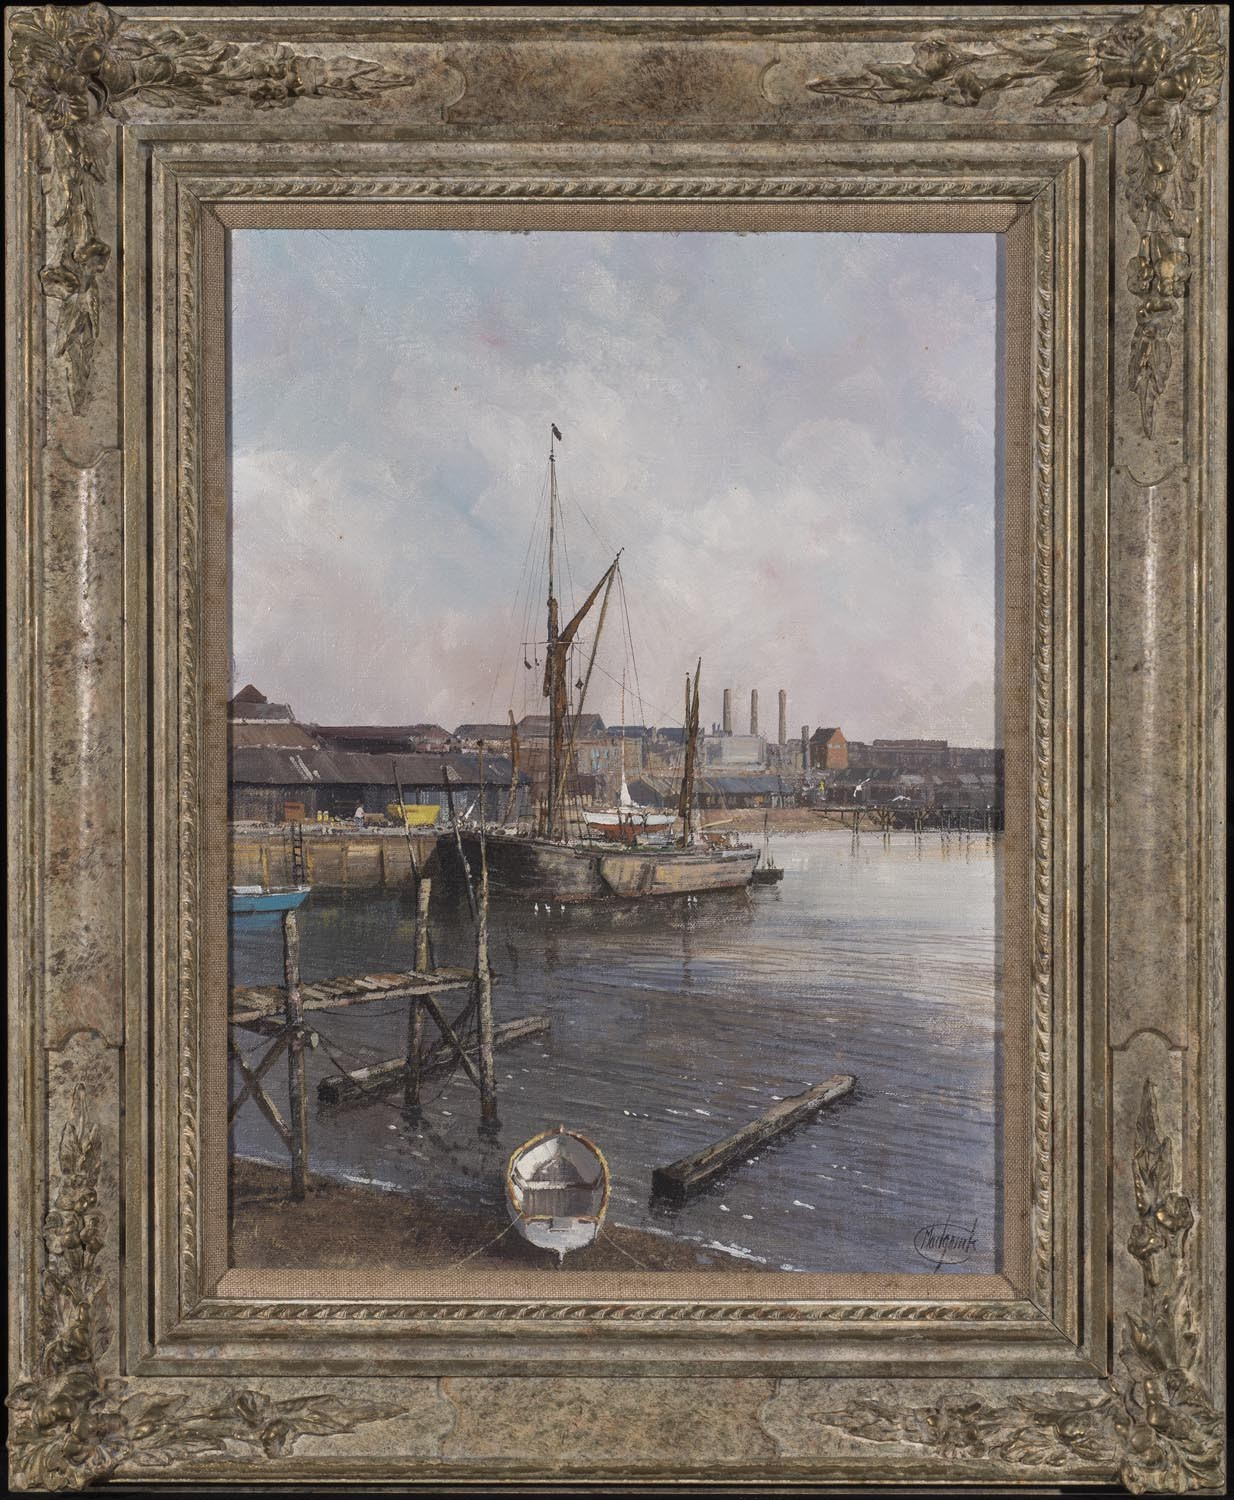 Low Tide, St Clement's Dock, Ipswich - SOLD